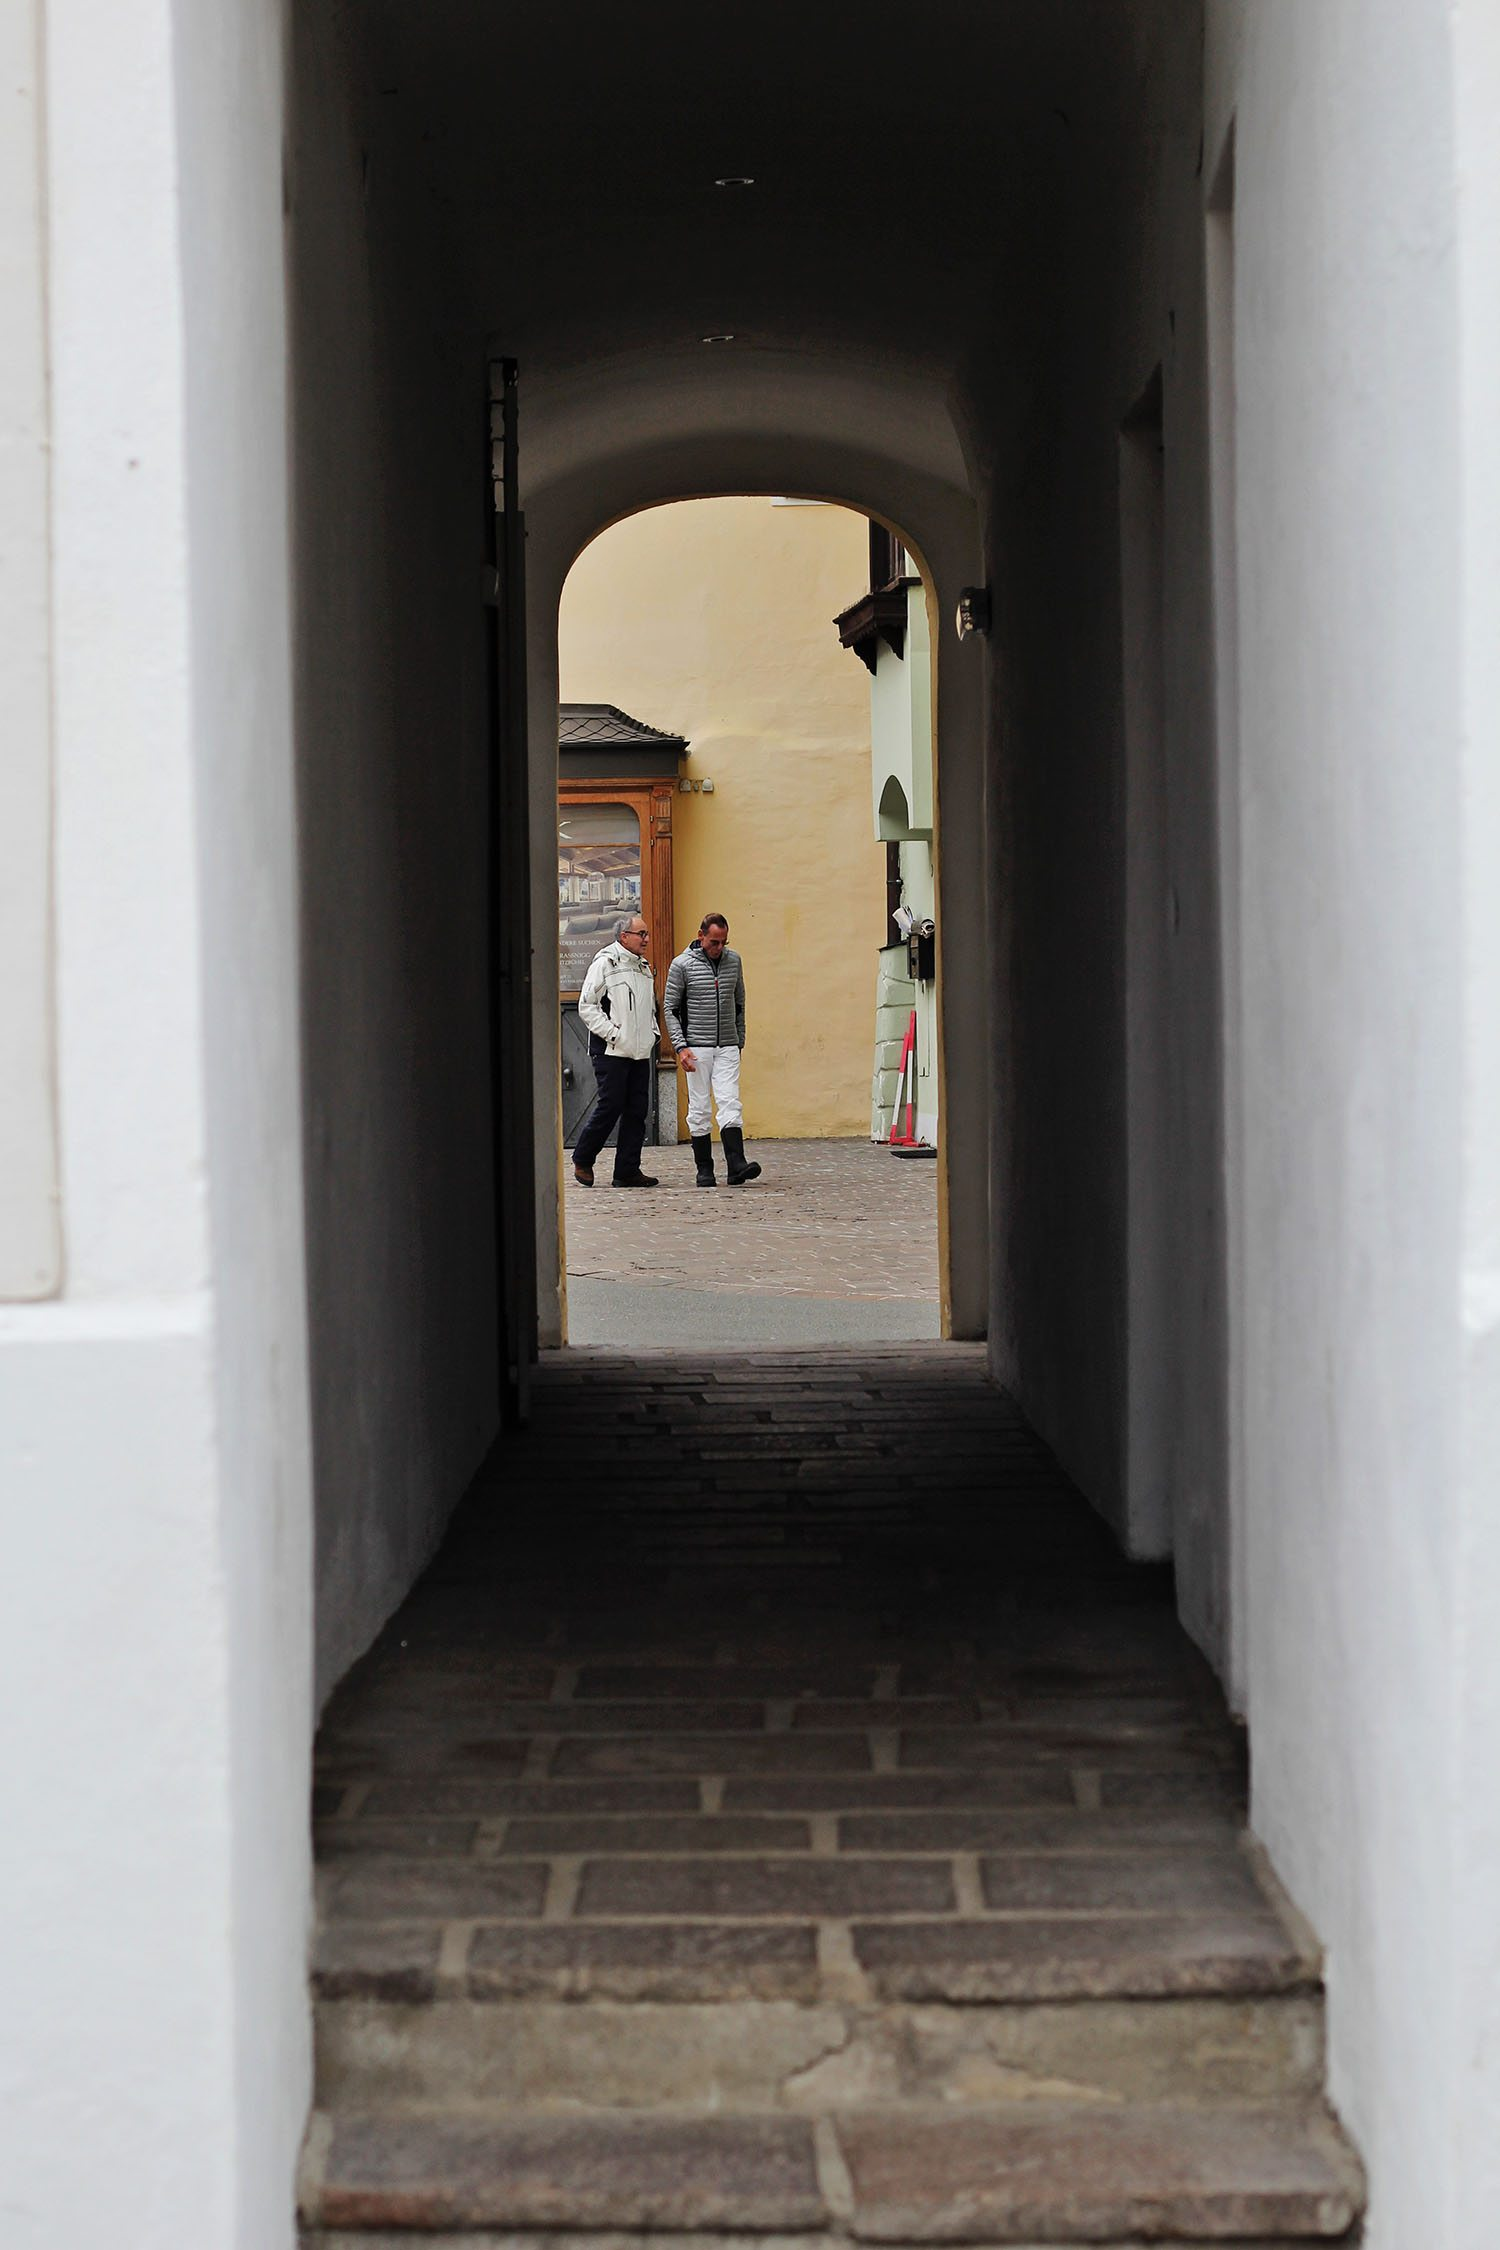 through the doorway